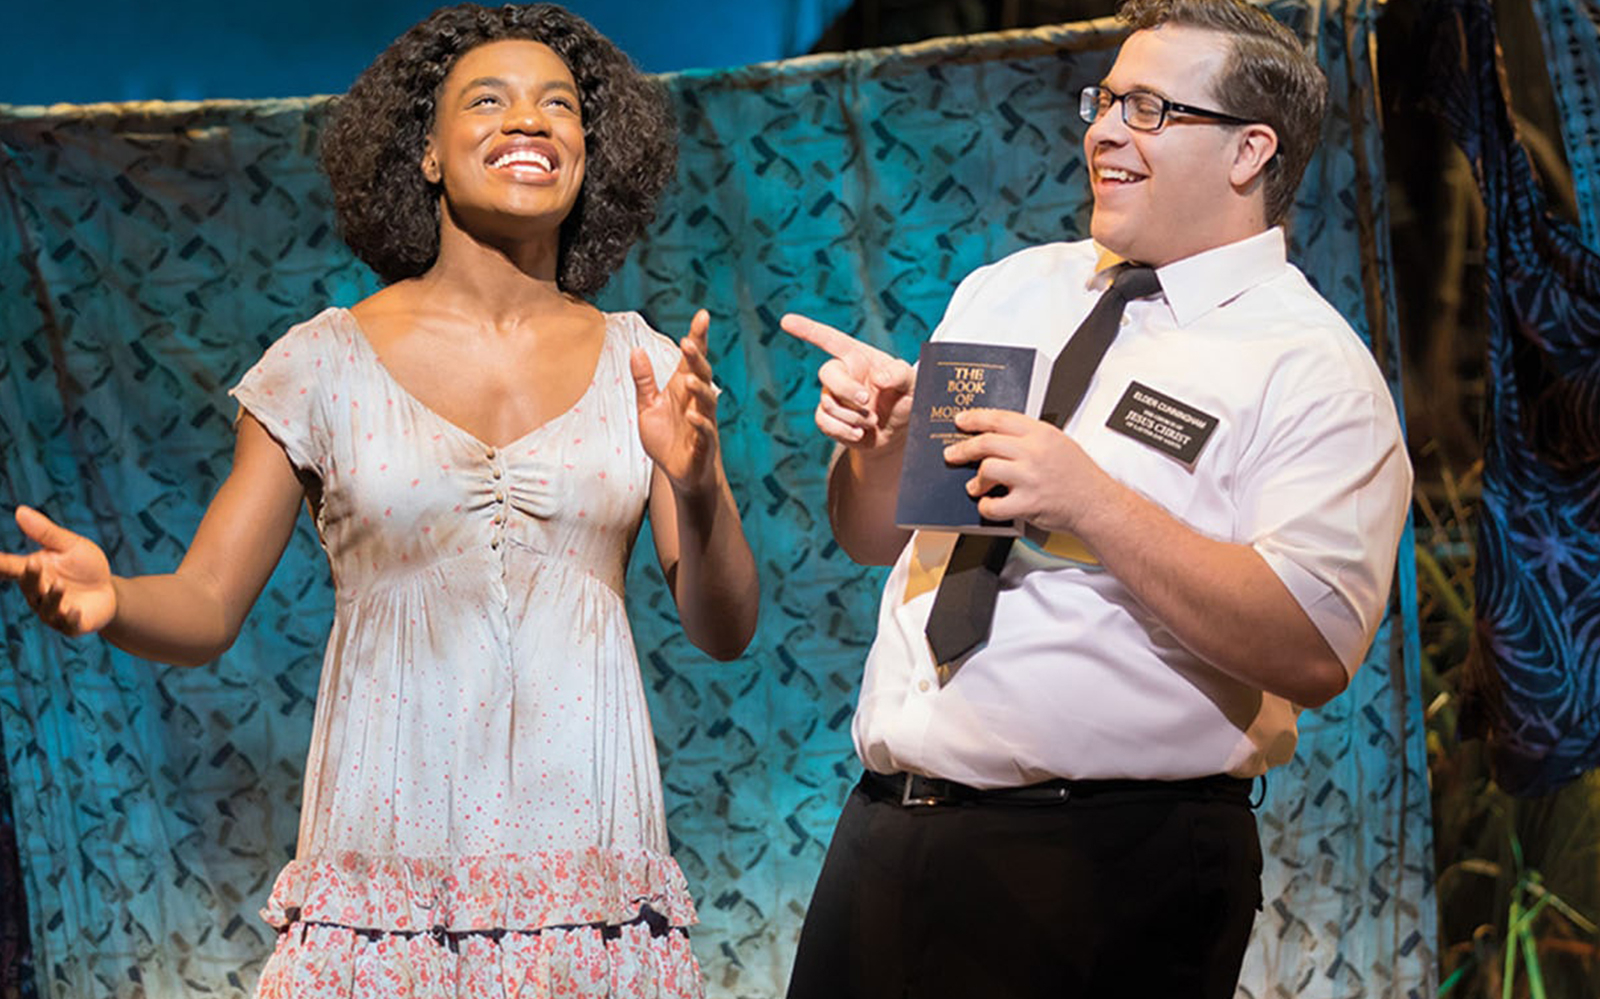 Eaa95d5e 44c4 4b99 851b 9218a4ee46ad 2843 london book of mormon 07